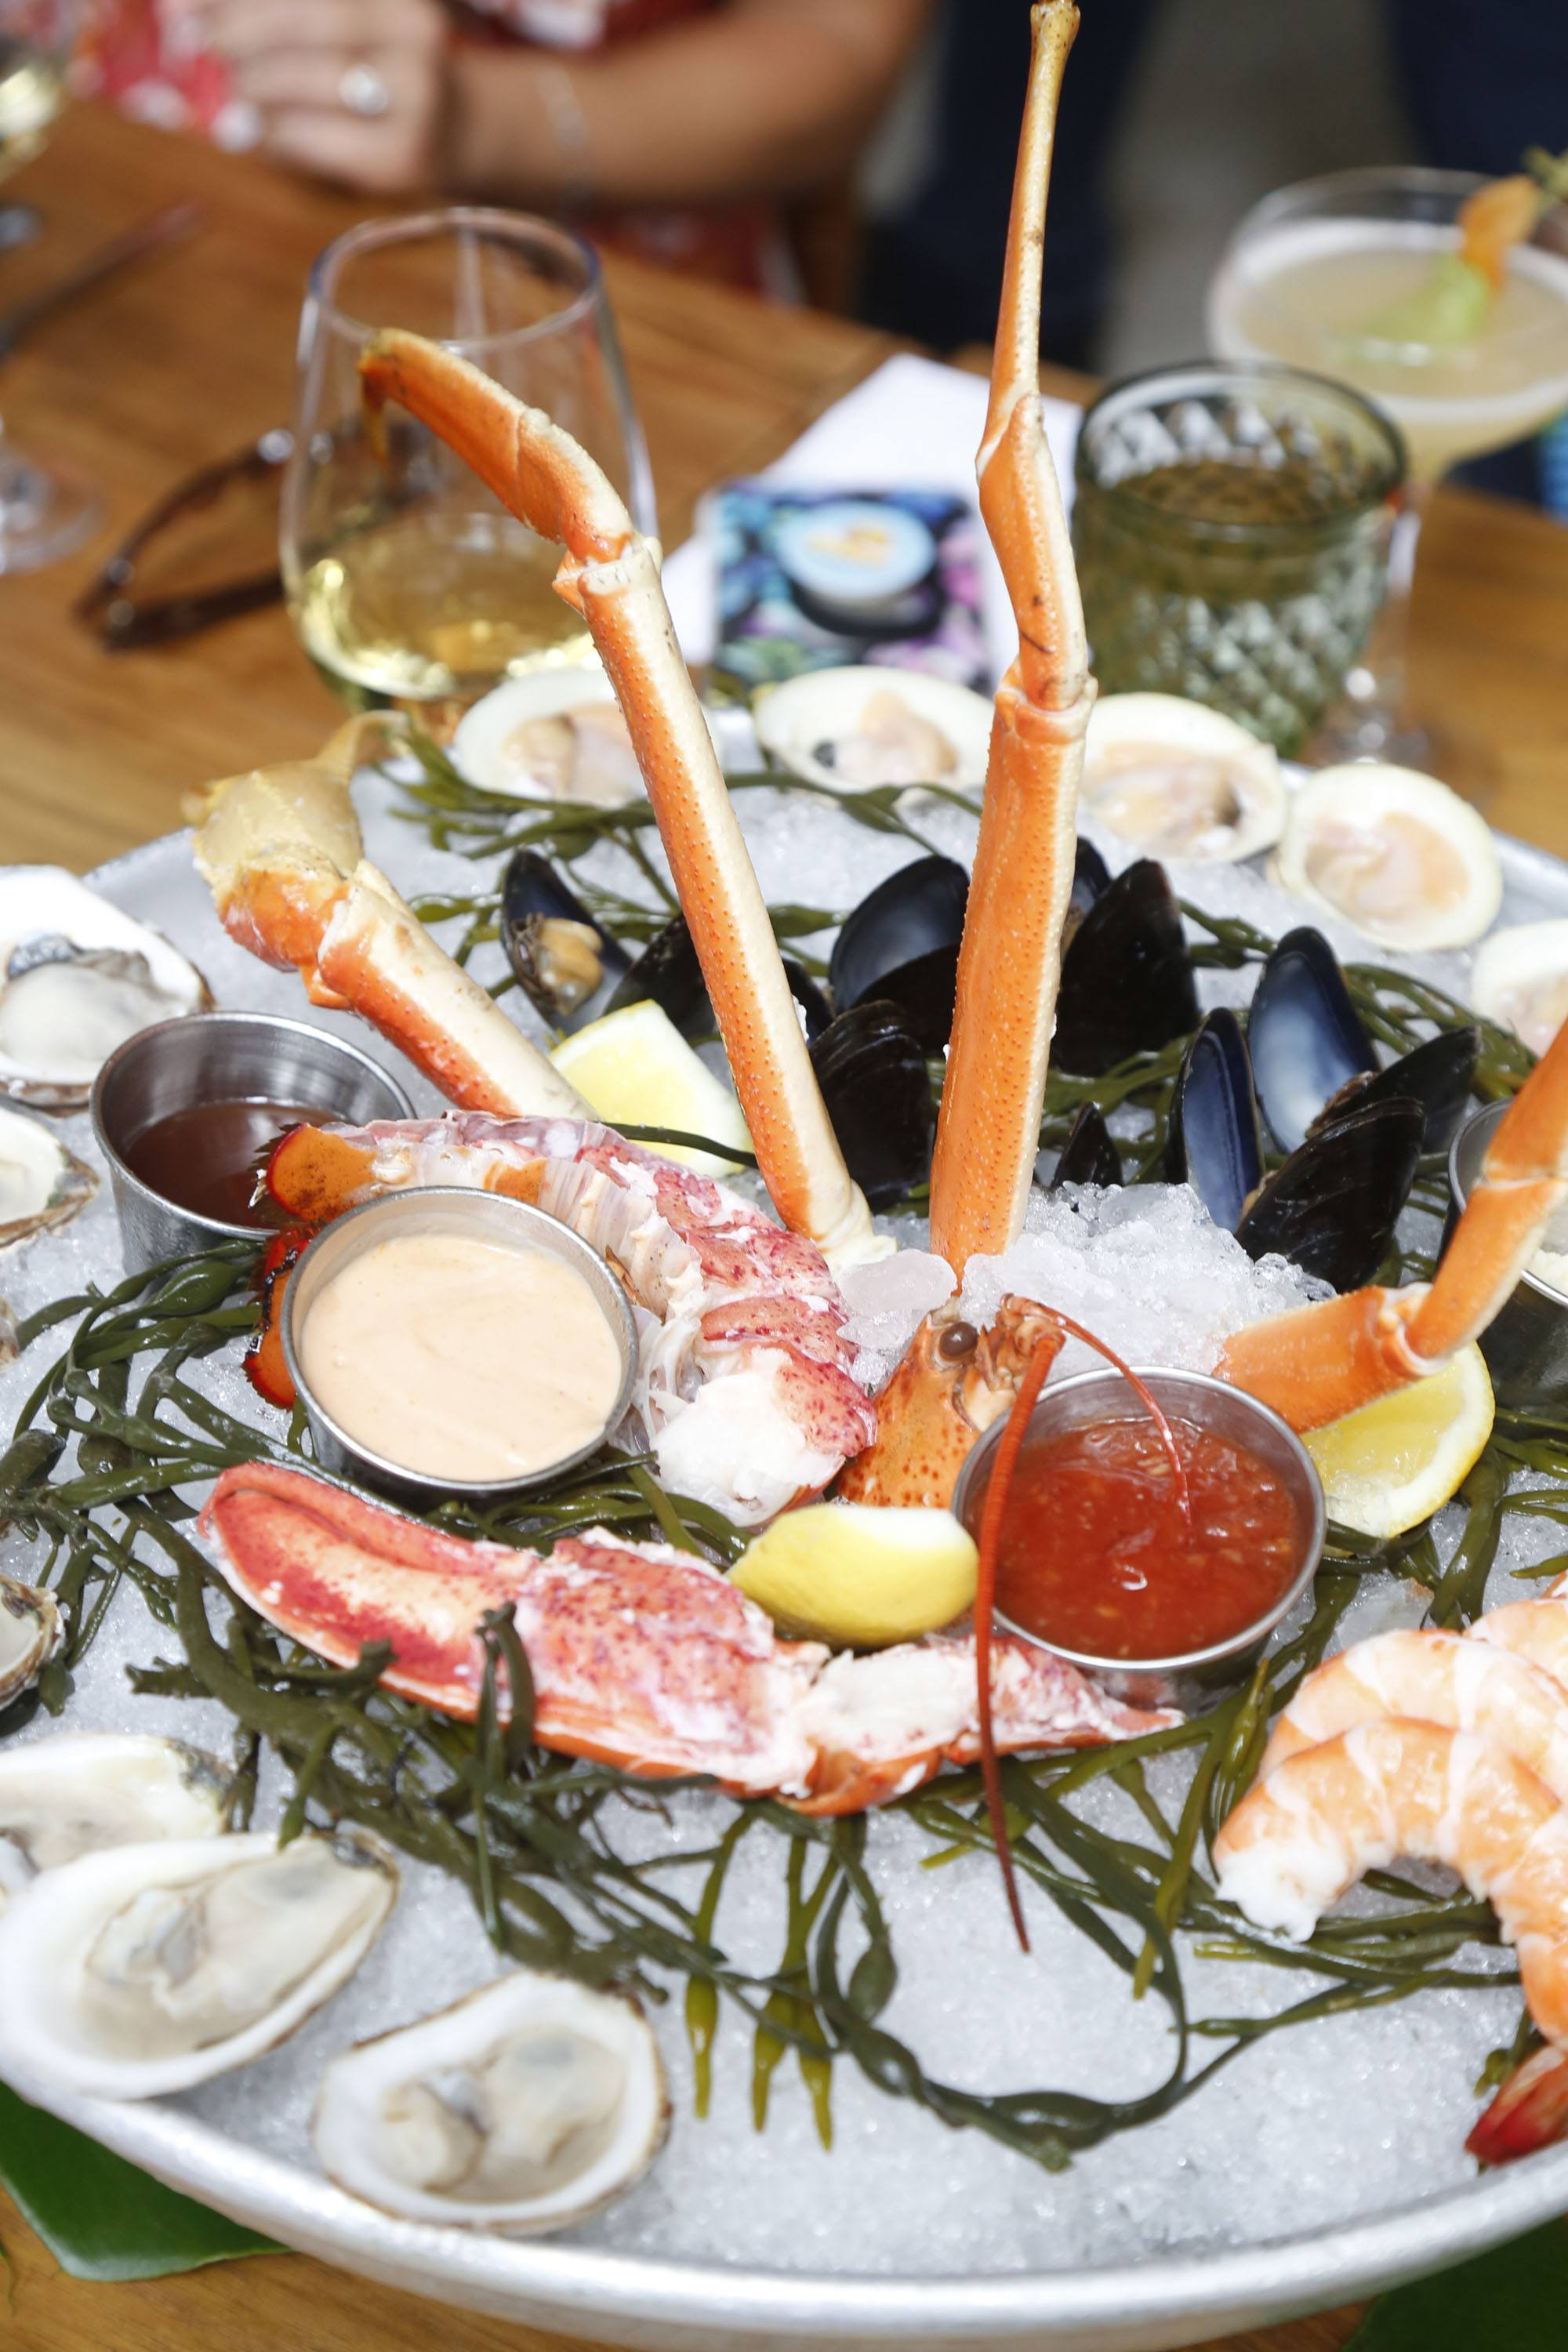 Le Zoo's seafood tower